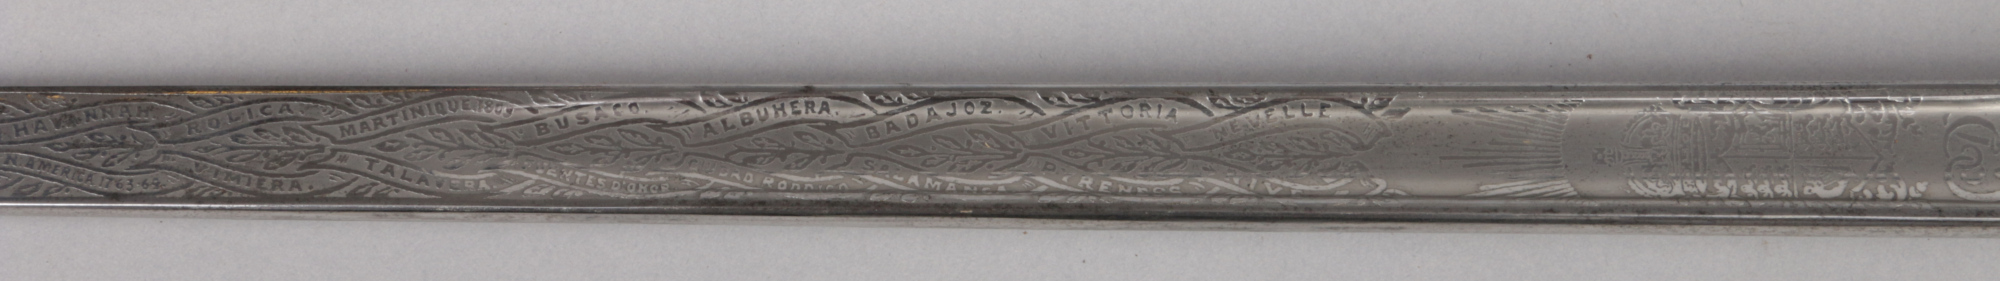 Lot 268 - A George V 1827 pattern Royal Rifle Corps. Officers sword by Wilkinson Sword, London. With etched